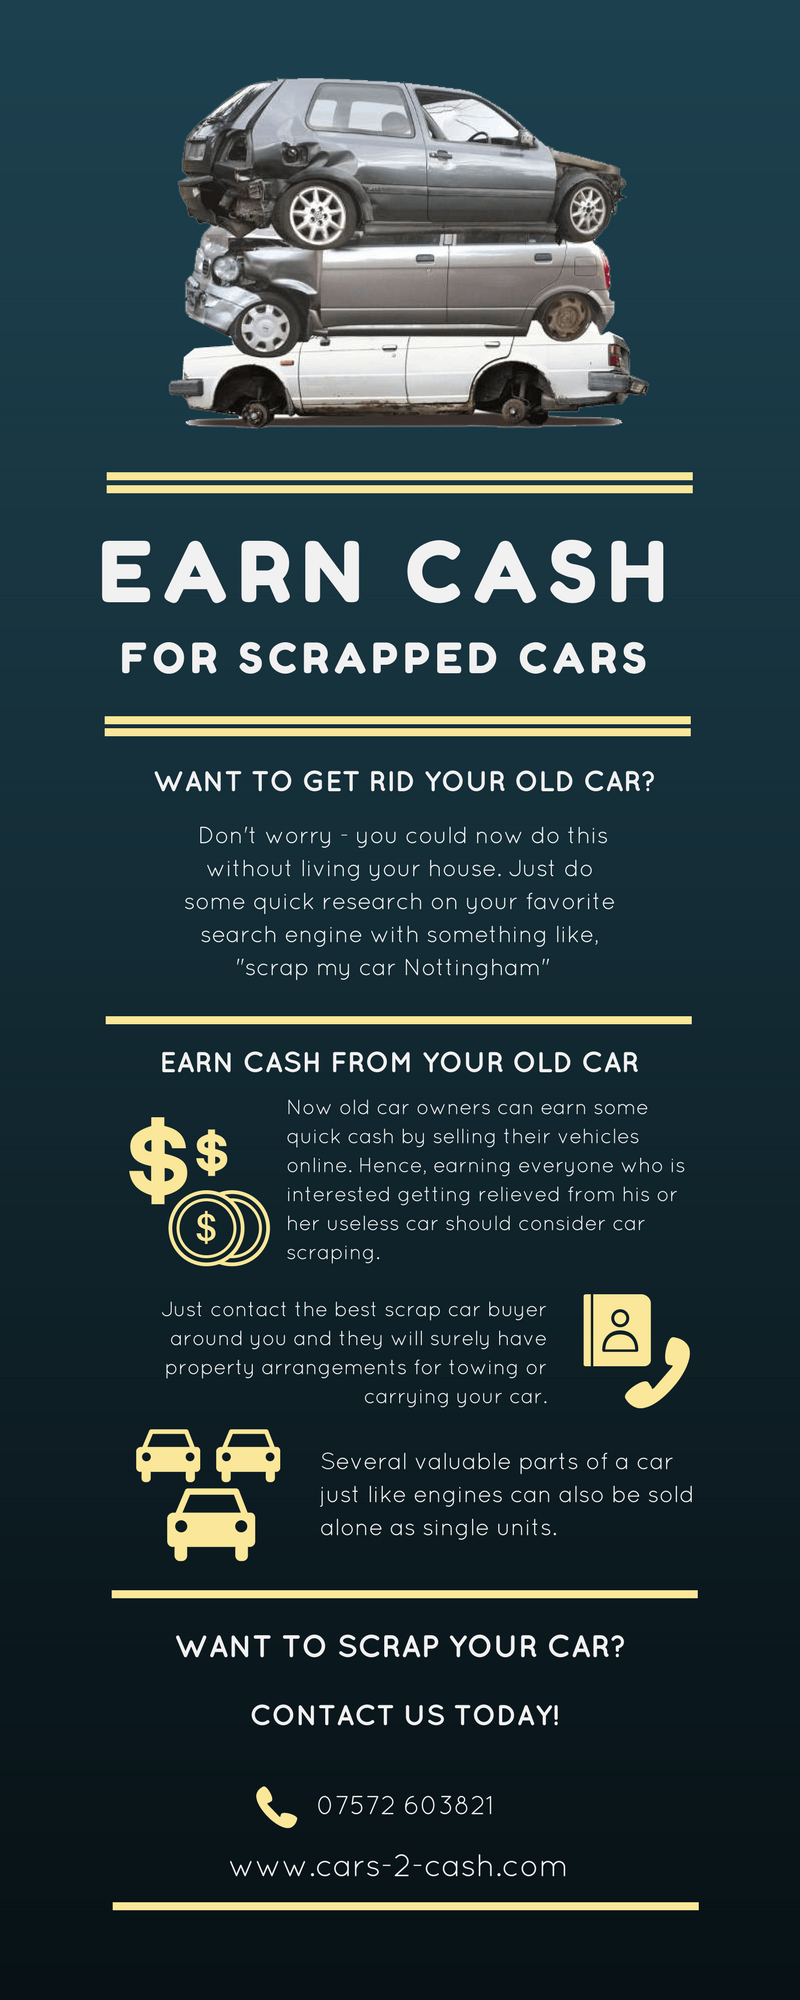 Old Car Owners Can Earn Some Quick Cash By Selling Their Old Cars